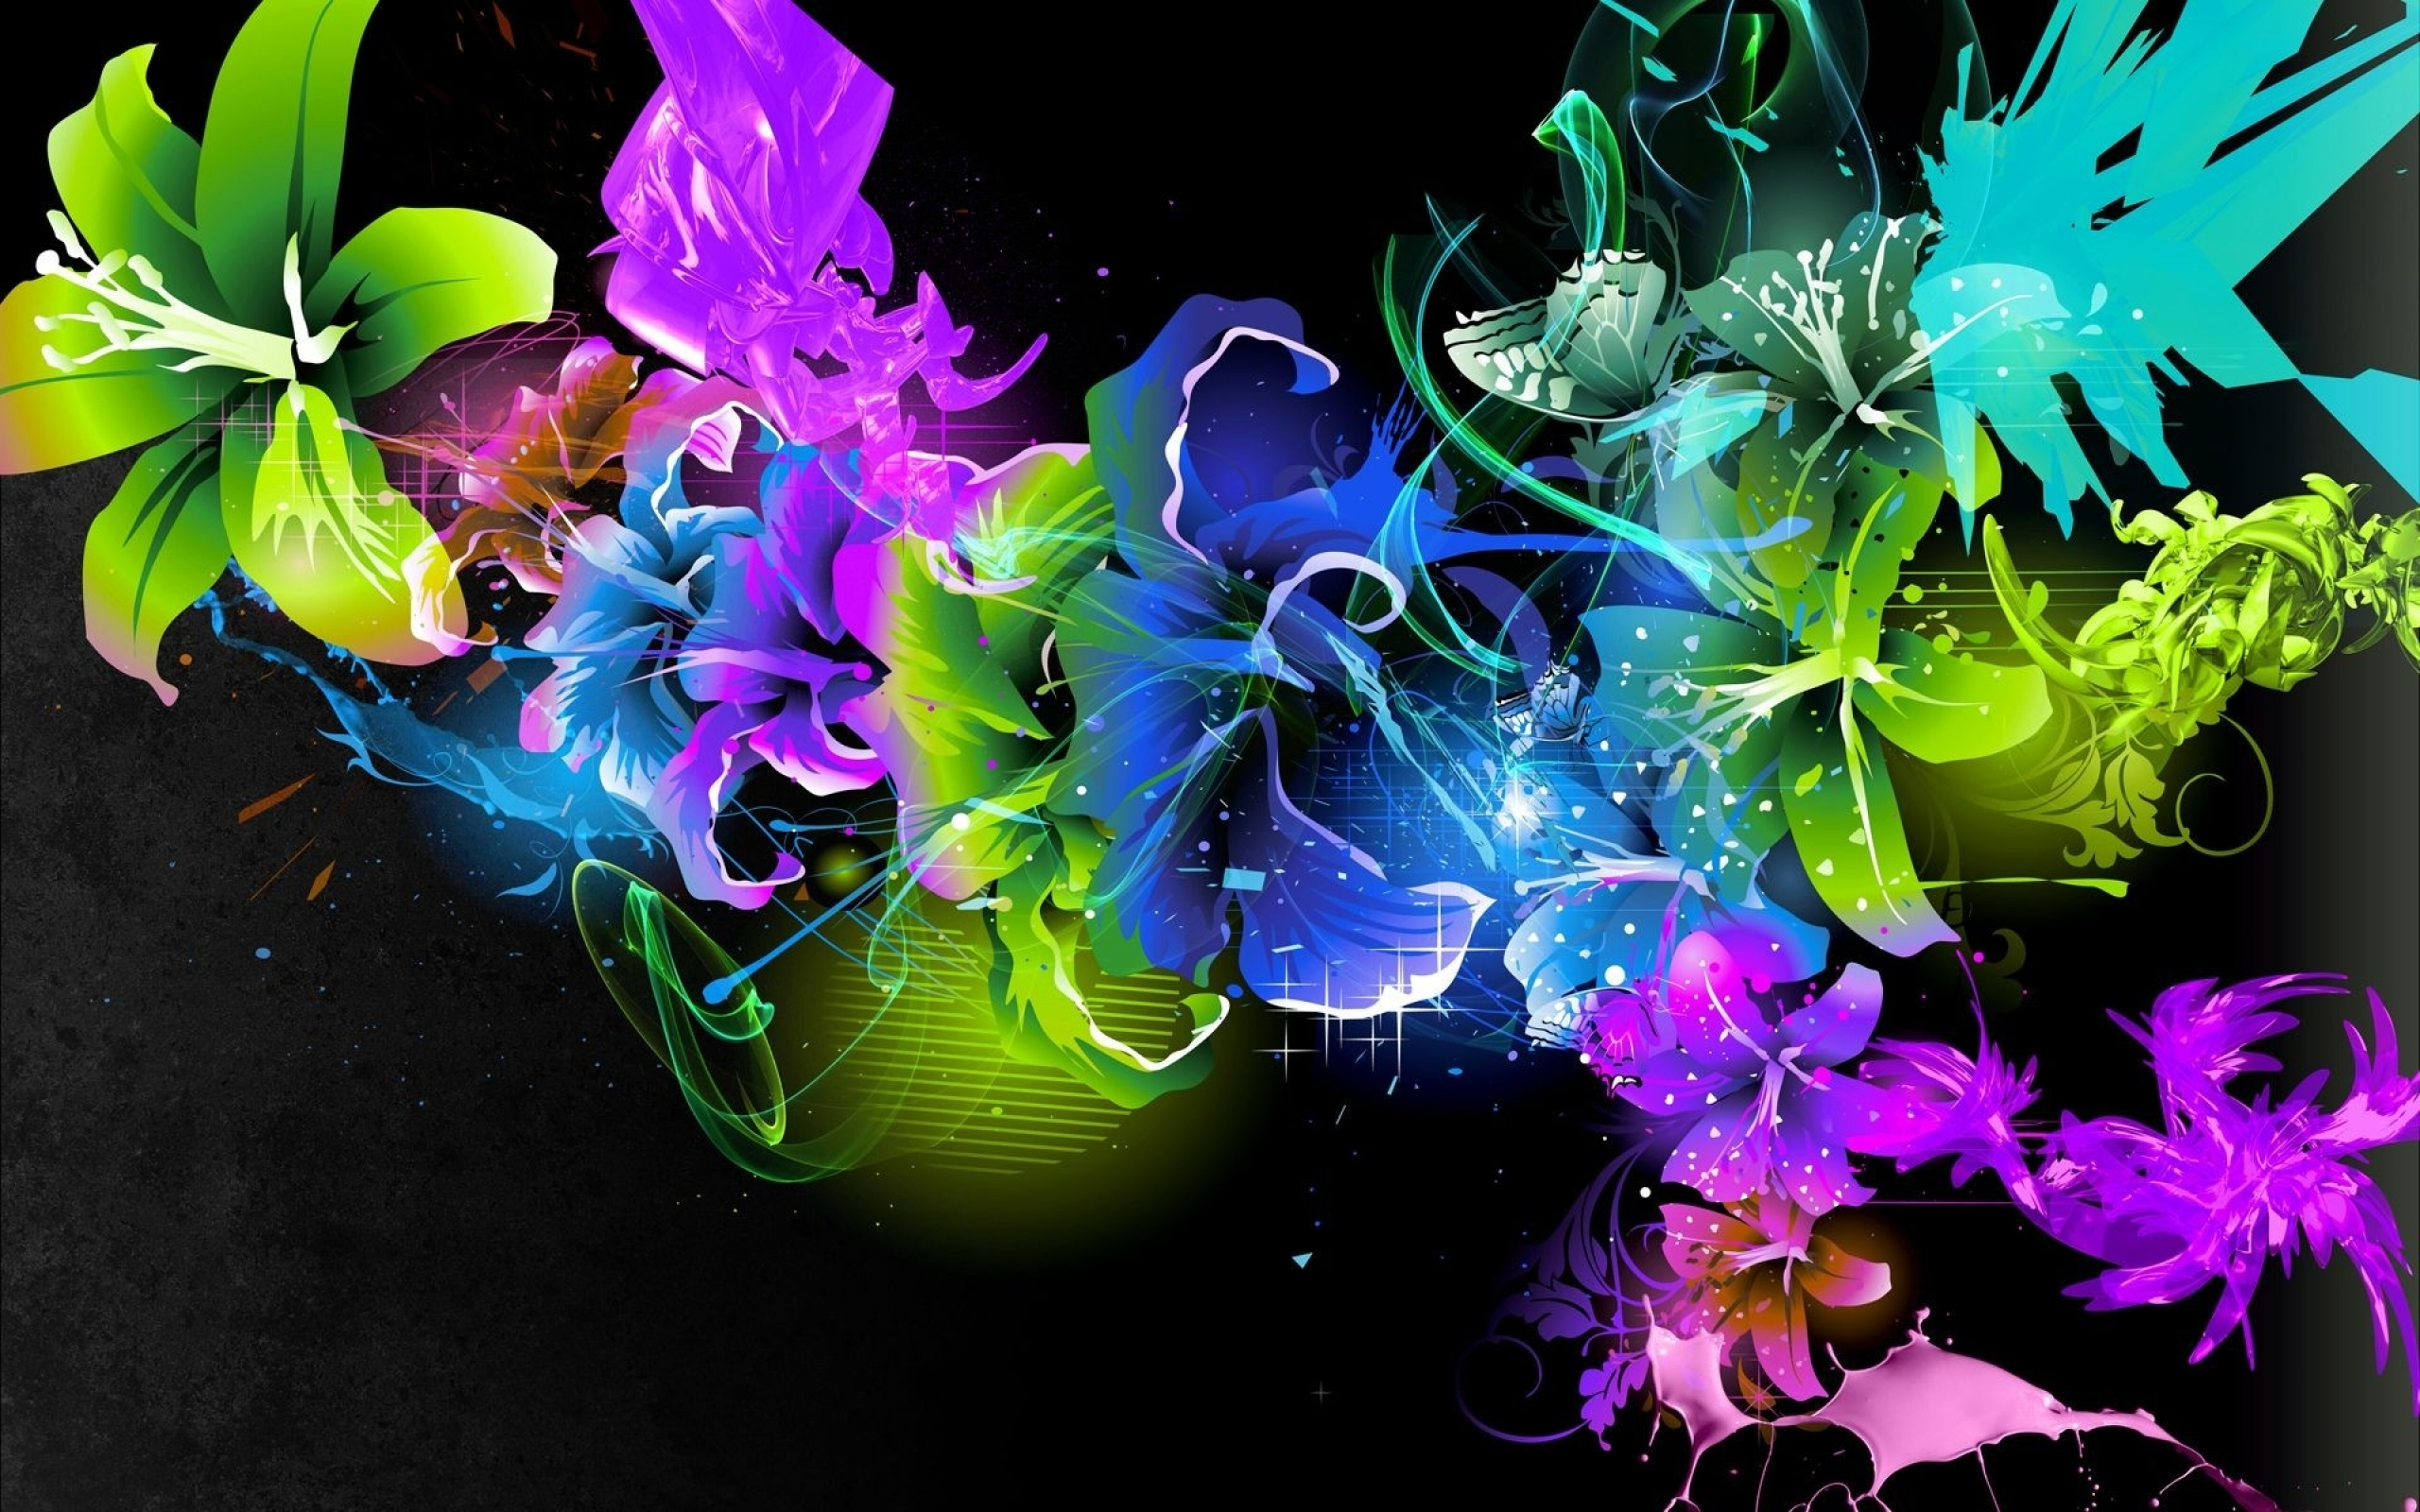 Abstract Flower HD Wallpapers 1080p #89281 #128 Wallpaper